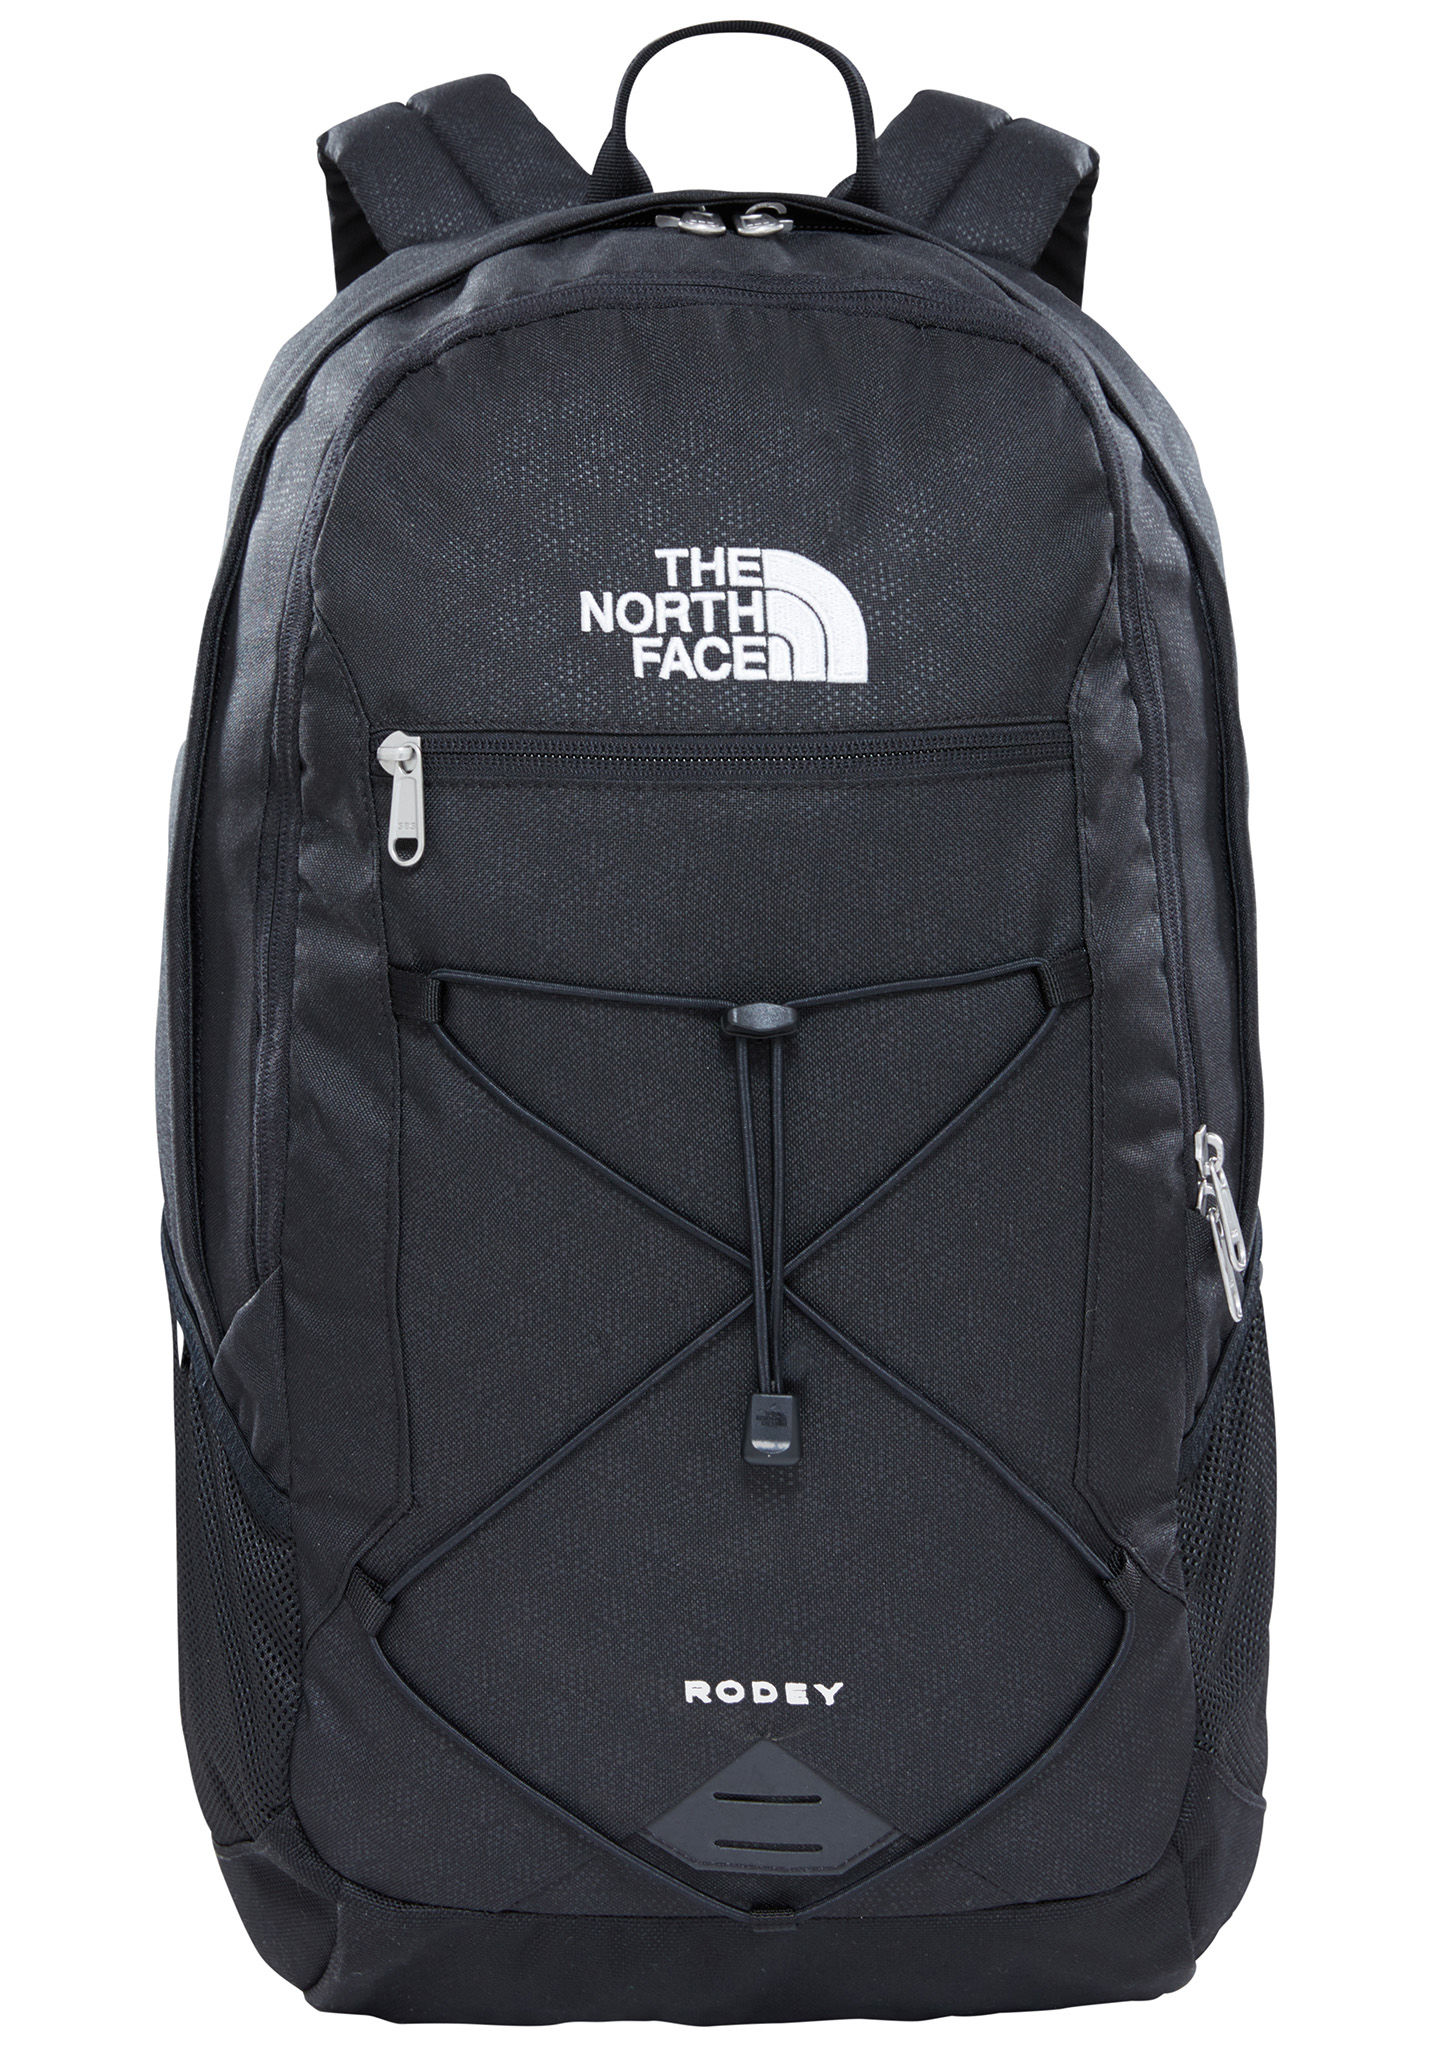 THE NORTH FACE Rodey - Backpack - Black - Planet Sports 4dd790e1f0a5